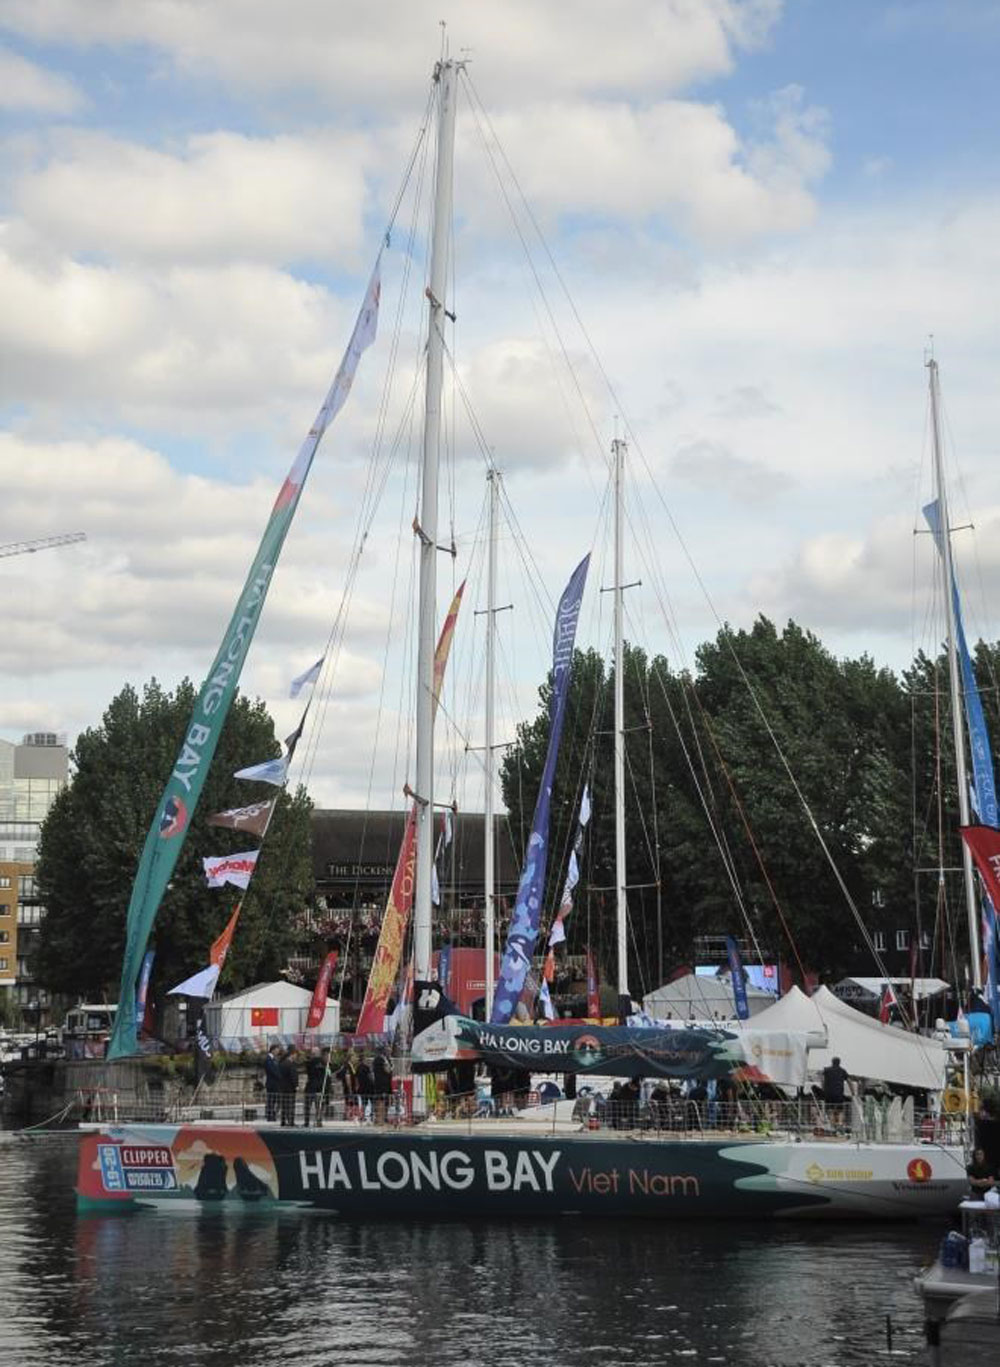 Global yacht race clipper,  Ha Long Bay – Vietnam, Clipper Round the World Yacht Race, cooperation agreement,